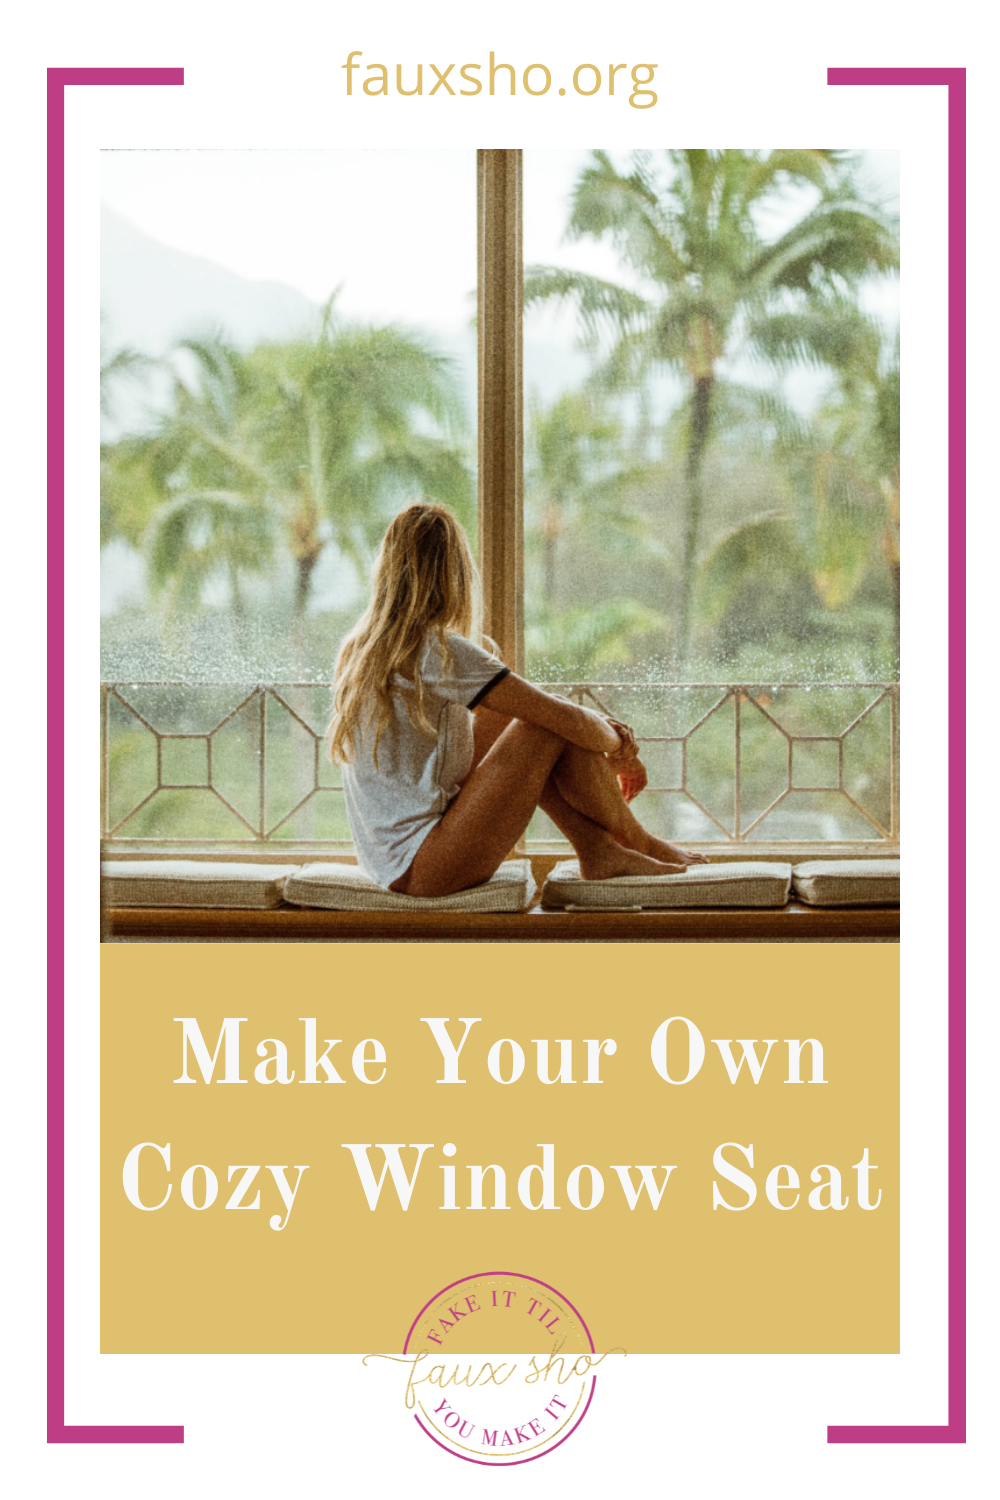 Fauxsho.org is loaded with DIY ideas for crafters of all skill levels and abilities! Transform your space into something unique and personal. Make your very own window seat with these fun ideas!